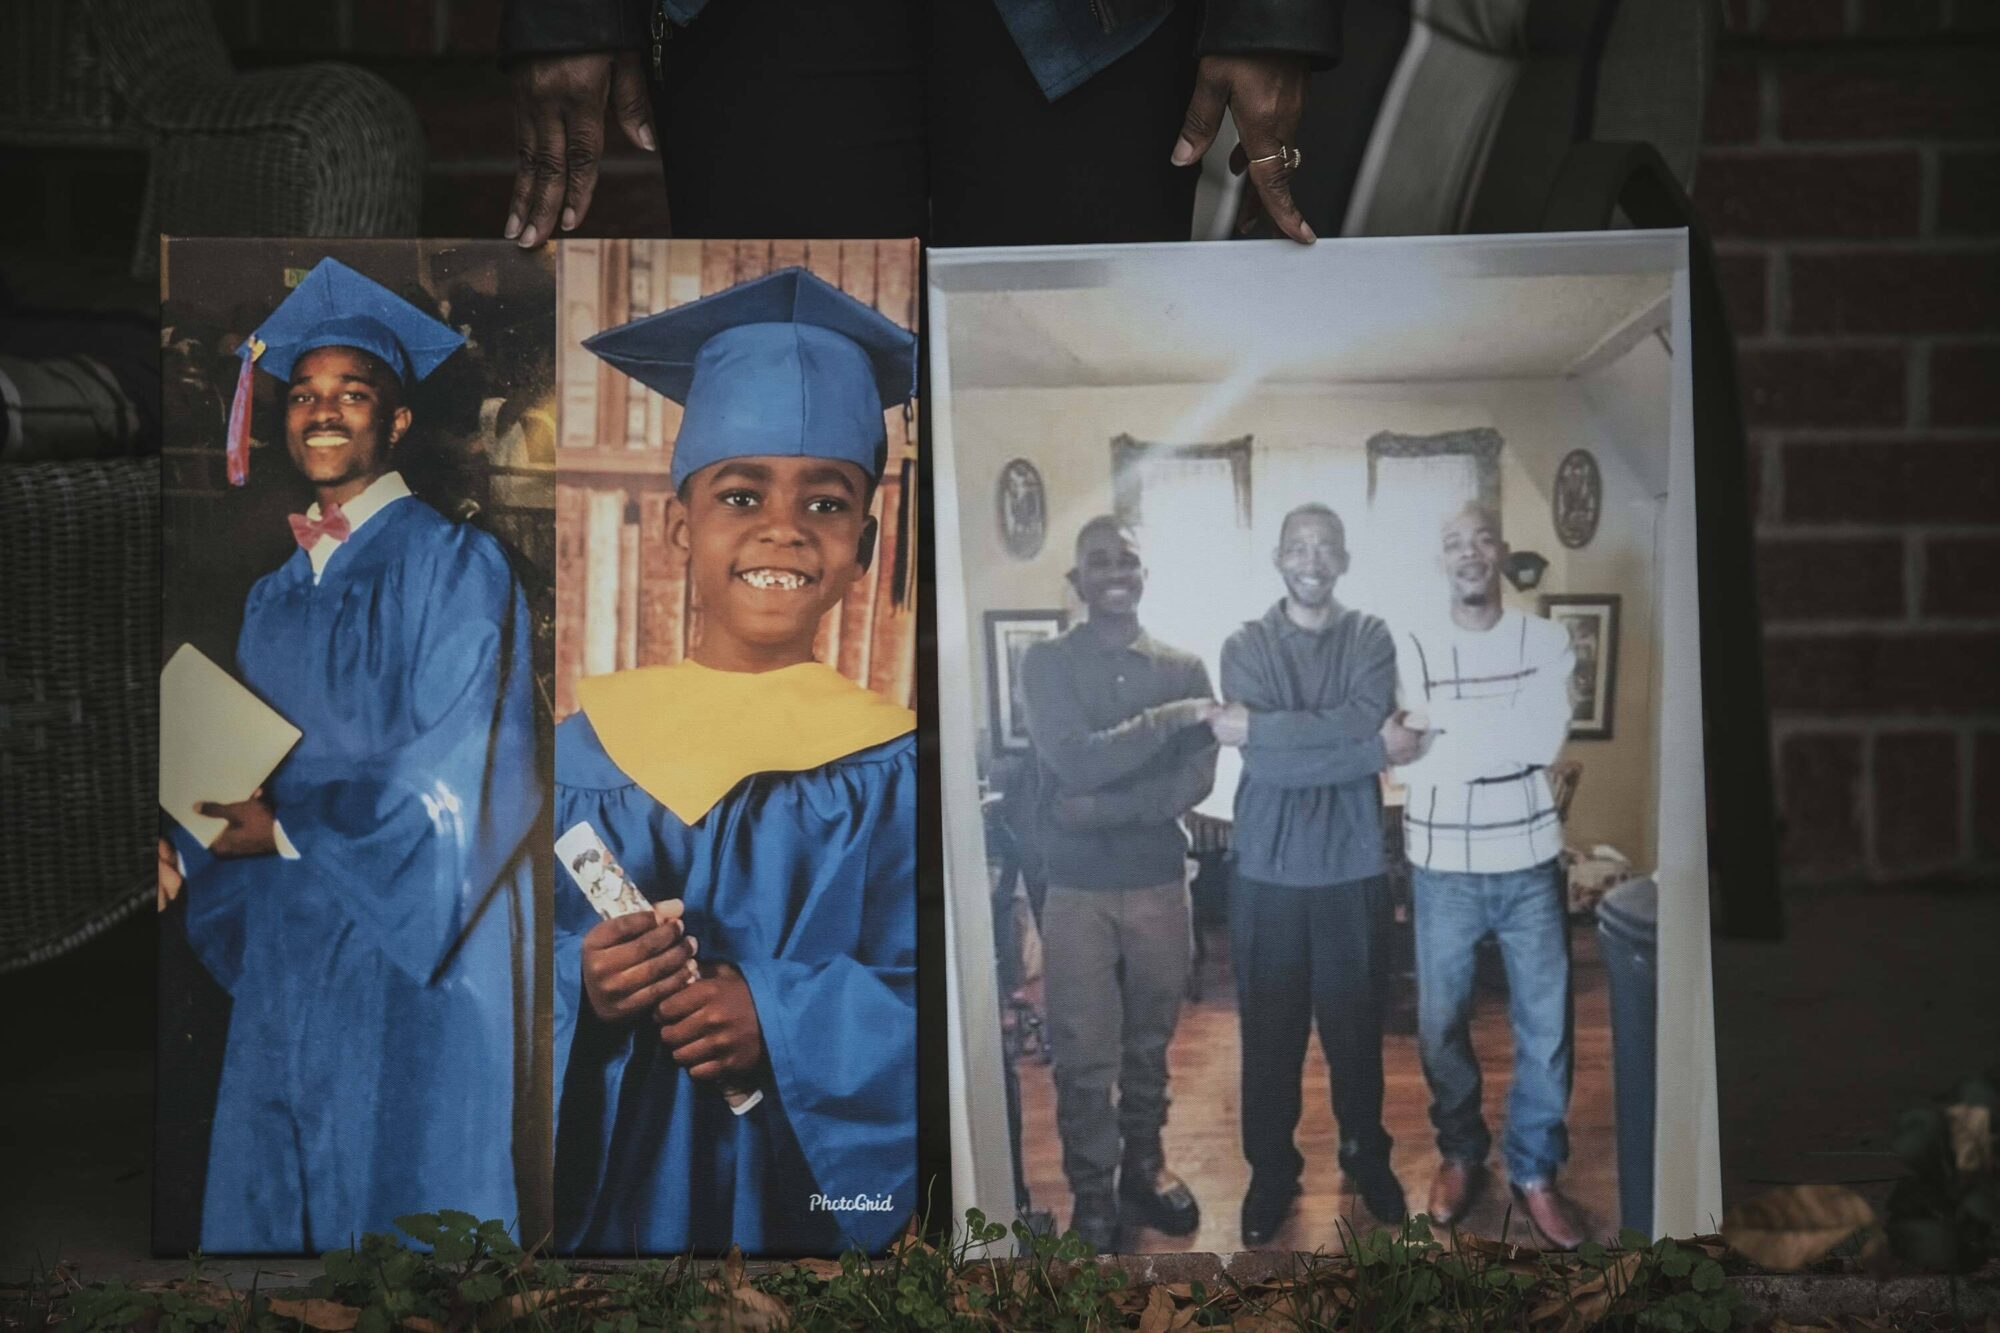 """Jeanette McClenton holds photographs of her son Duntate Young in a composite with his oldest son (left) and with his father, Leanell """"Troy"""" McClenton, and his cousin (right) while standing for a portrait outside her home in West Memphis, Arkansas."""